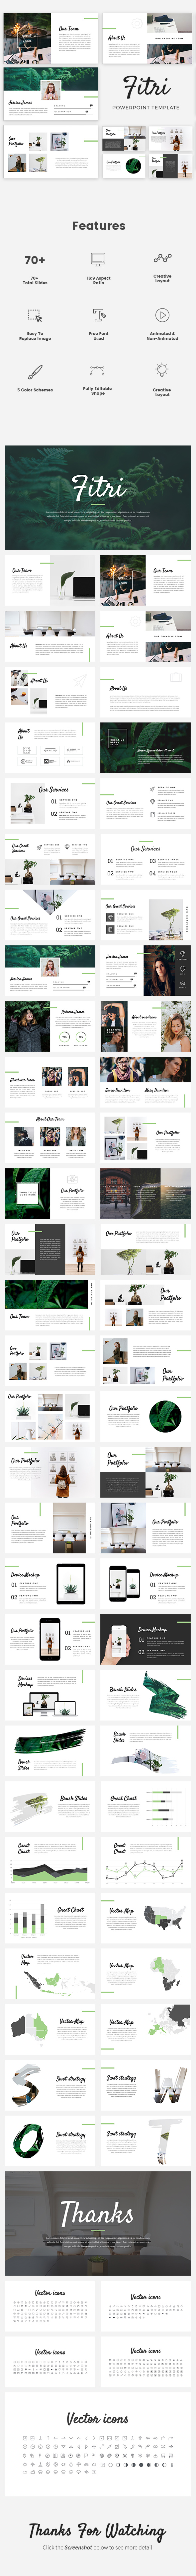 Fitri - Creative Google Slides Template - Google Slides Presentation Templates